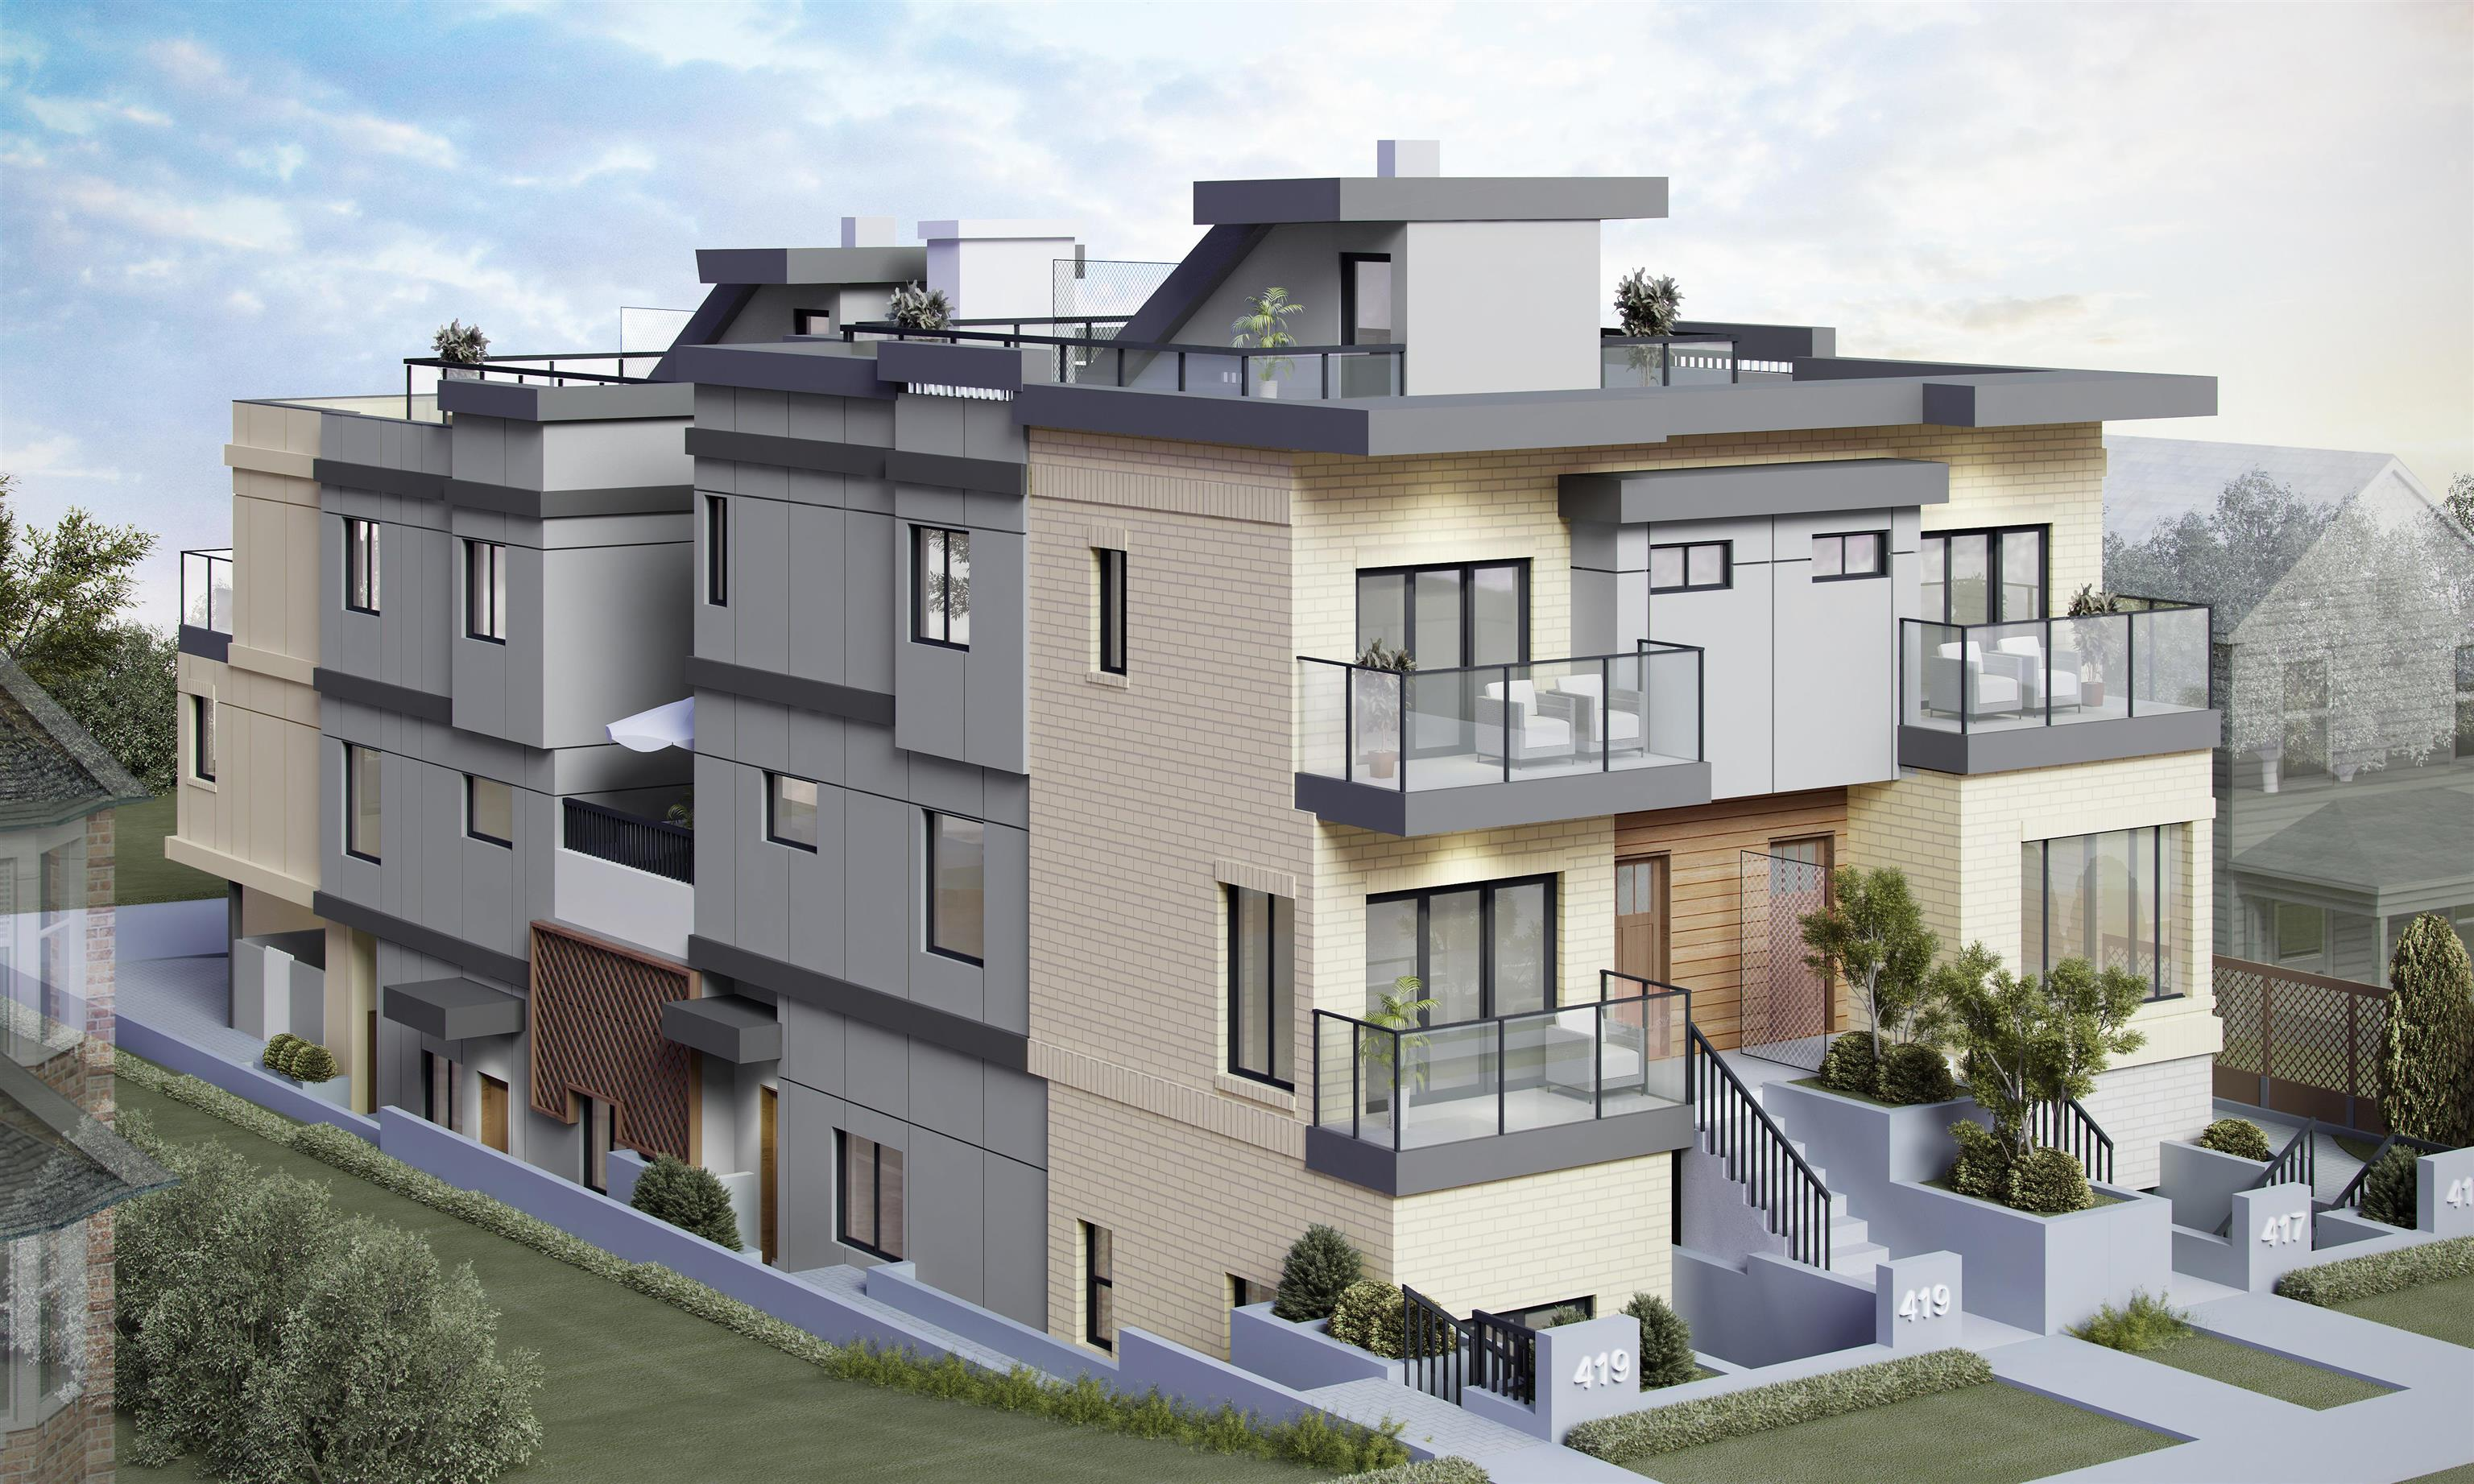 2 419 E 2ND STREET - Lower Lonsdale Townhouse for sale, 4 Bedrooms (R2620414) - #1